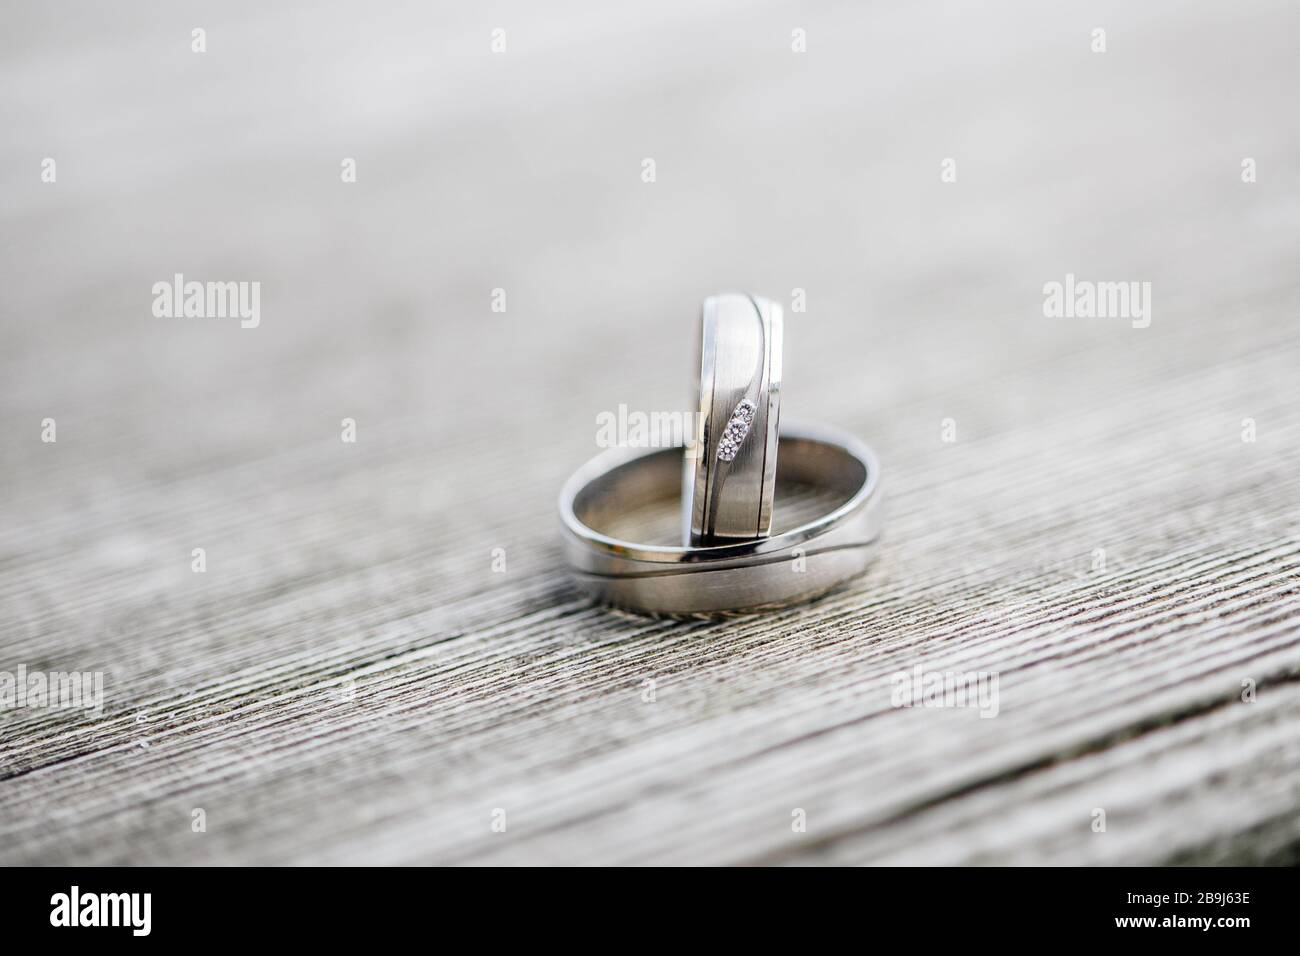 Wedding Ring symbol of love and human relationships commitment Stock Photo